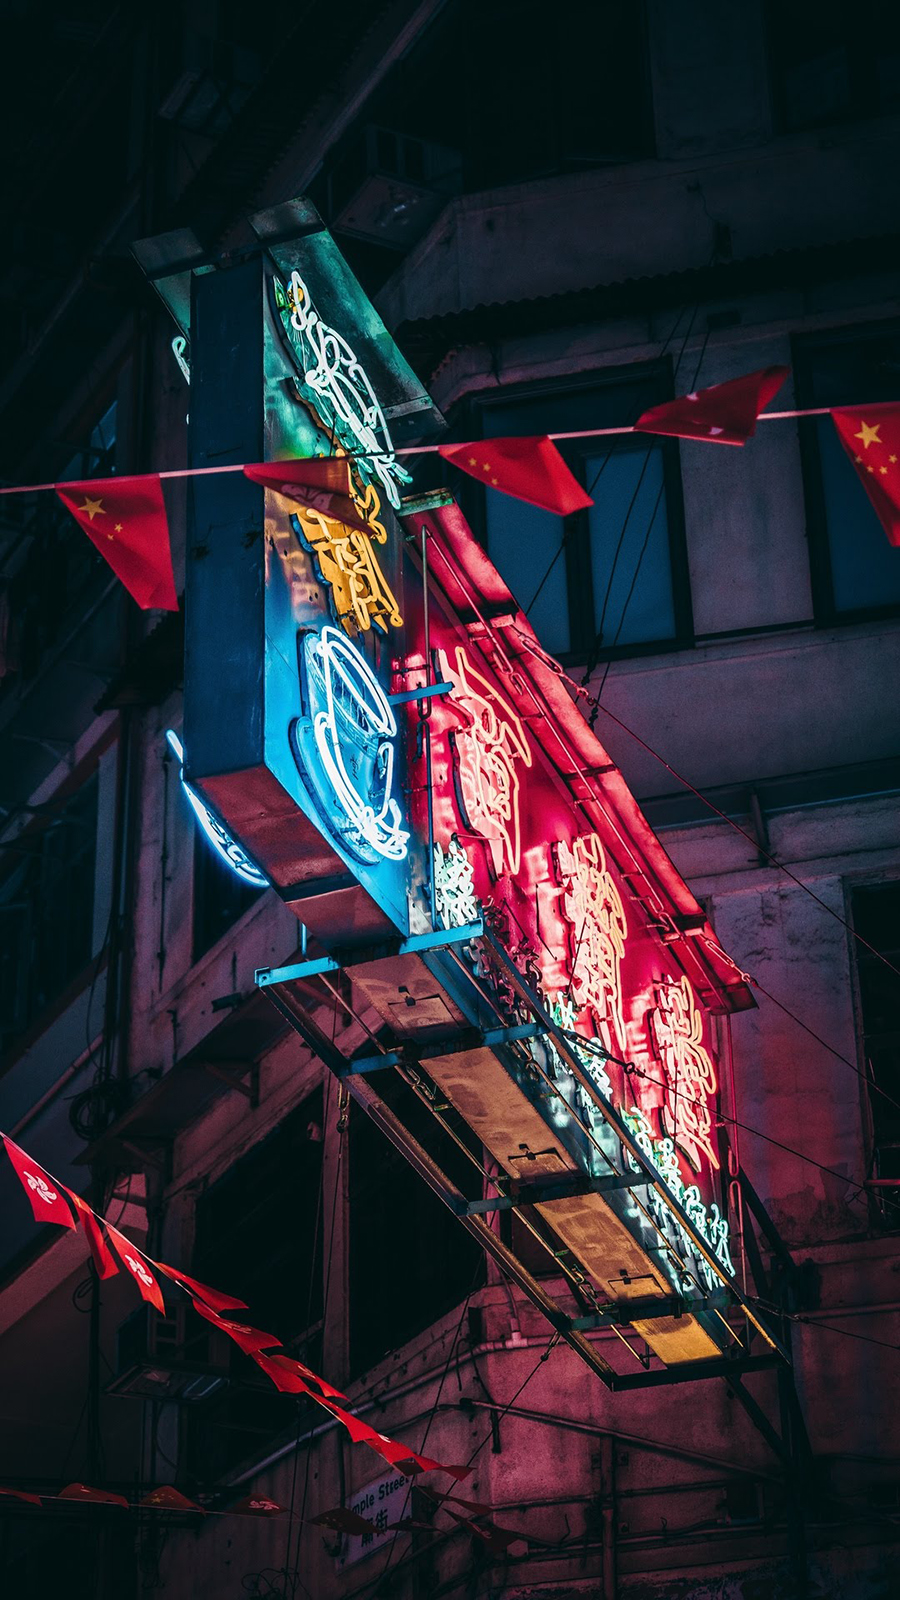 Neon HD Wallpapers – City Light Wallpapers Free Download